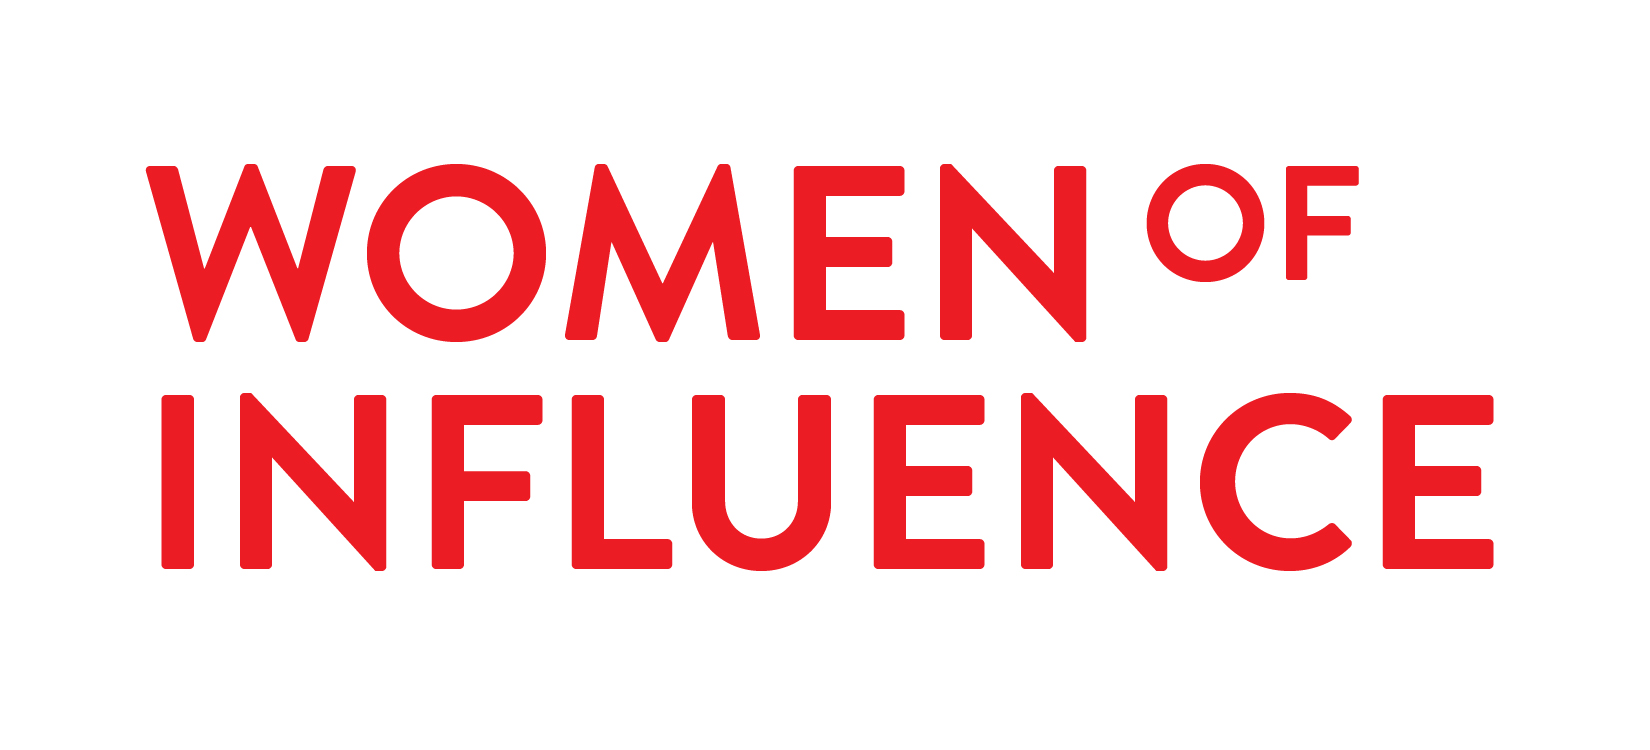 Women of Influence logo featured image